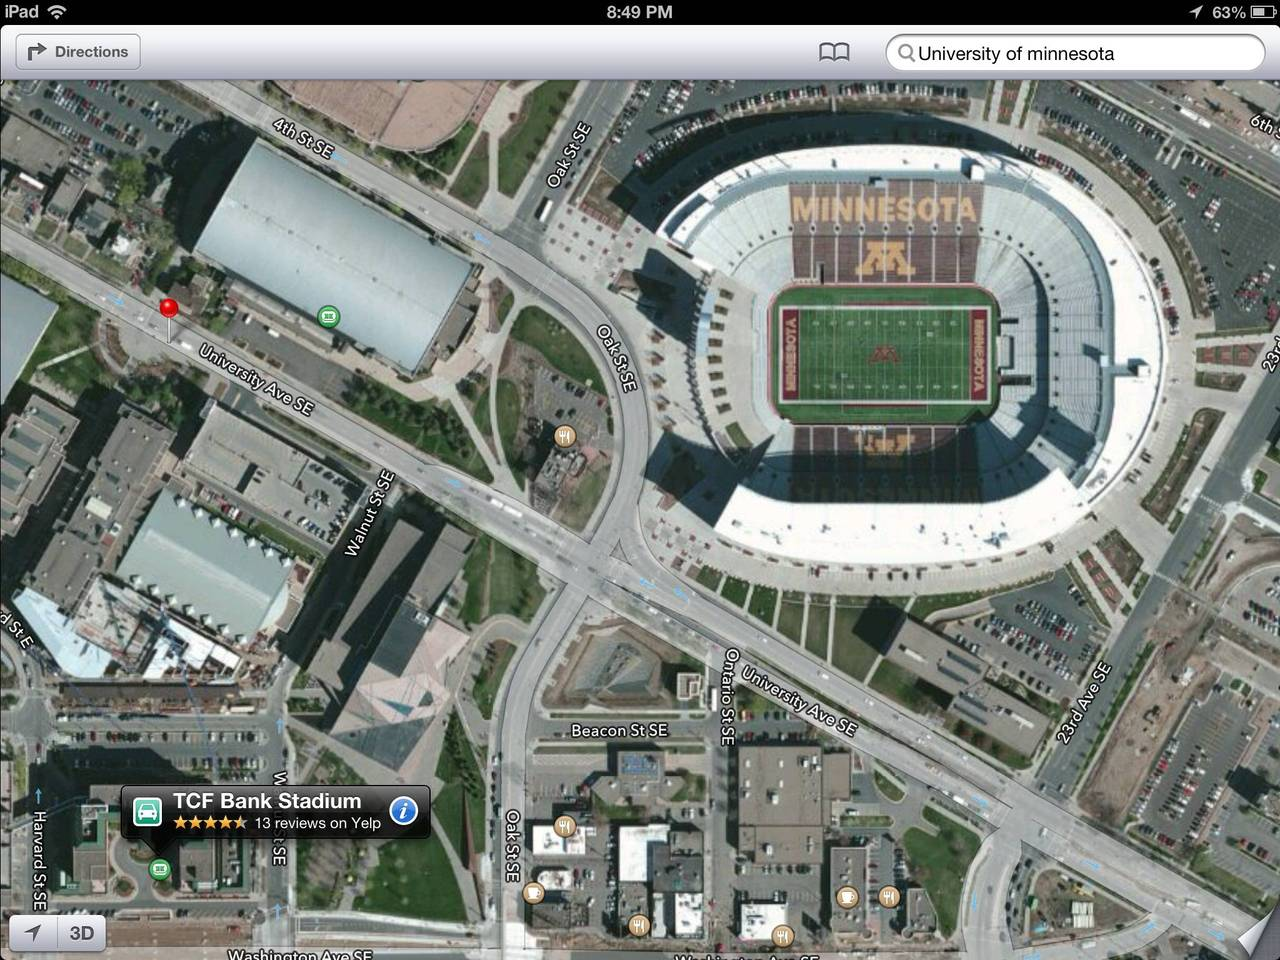 TCF Bank Stadium should be somewhere around here